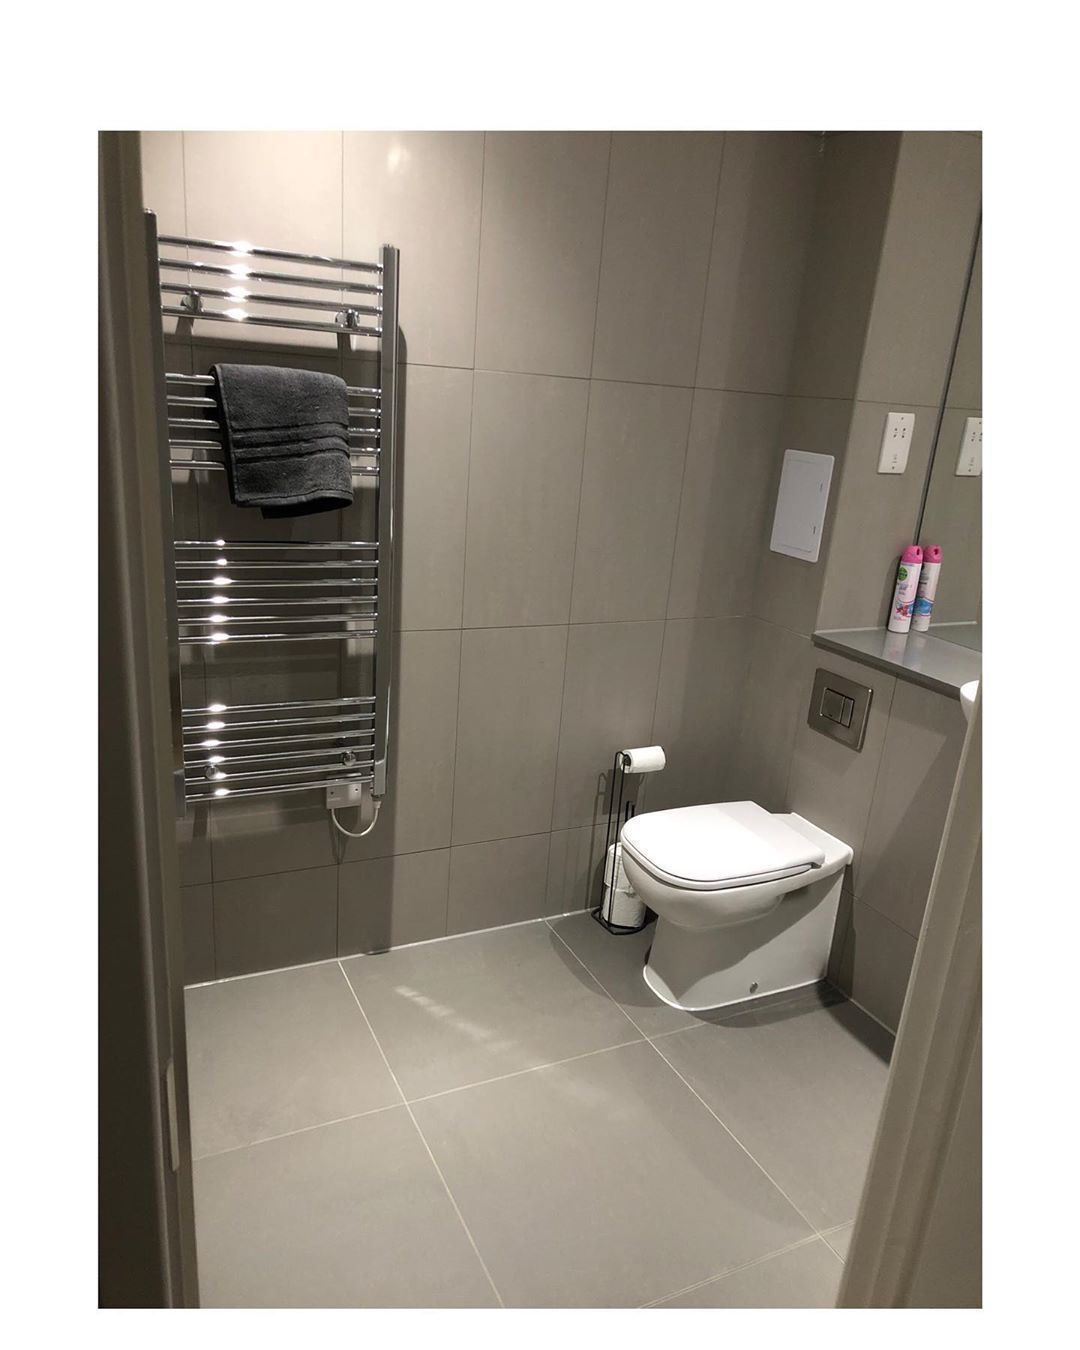 Clean & tidy downstairs loo! #itsthelittlethings #modernhome #cosyhome #homedetalis #homedetail #instahome #home #homestyle #homestyling #downstairsloo Clean & tidy downstairs loo! #itsthelittlethings #modernhome #cosyhome #homedetalis #homedetail #instahome #home #homestyle #homestyling #downstairsloo Clean & tidy downstairs loo! #itsthelittlethings #modernhome #cosyhome #homedetalis #homedetail #instahome #home #homestyle #homestyling #downstairsloo Clean & tidy downstairs loo! #itsthelittleth